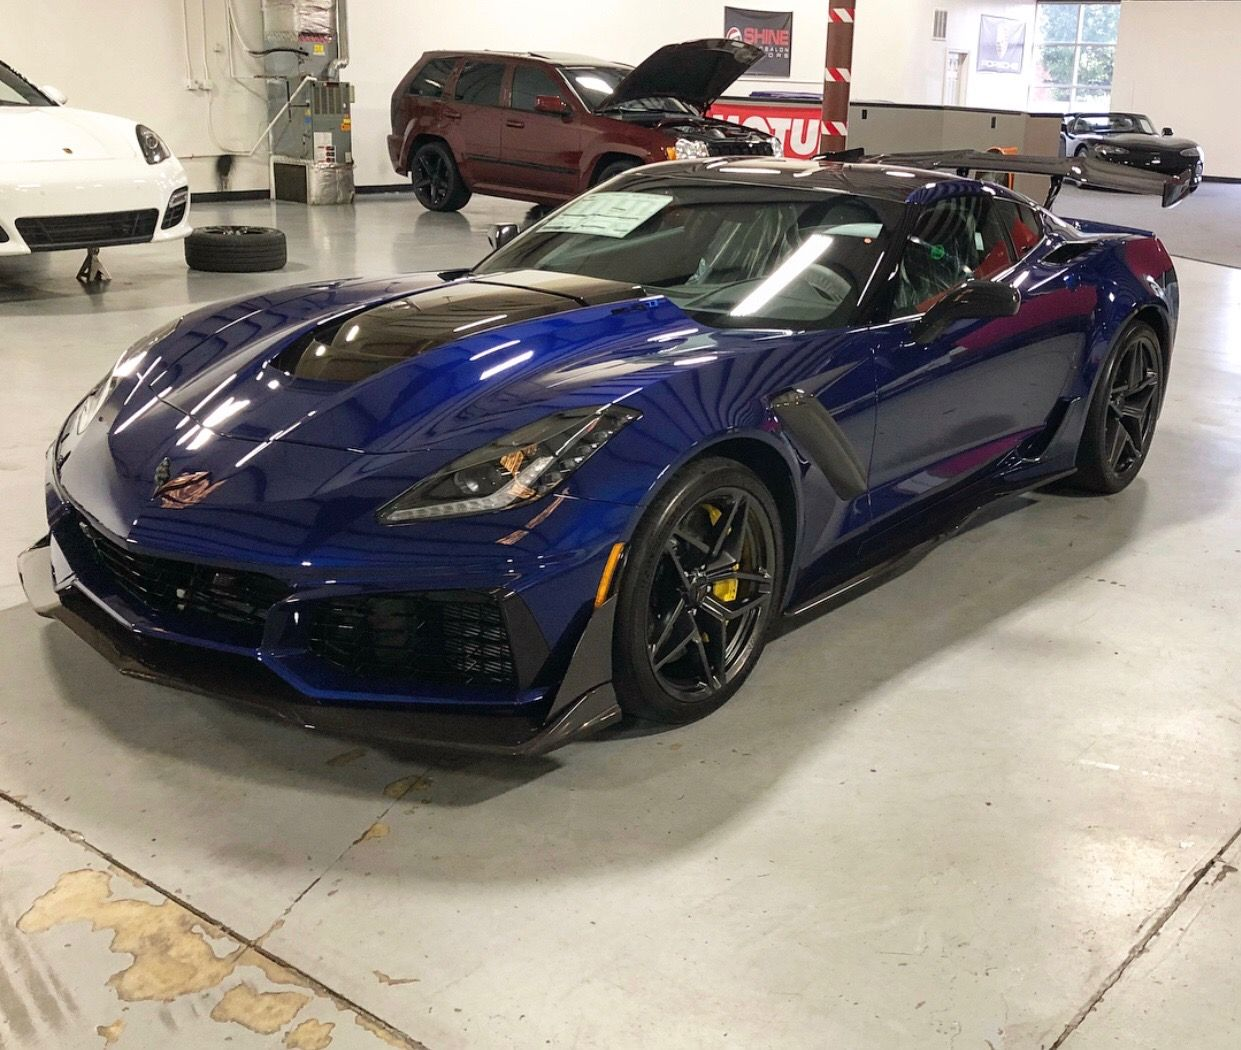 Chevrolet Corvette C7 ZR1 painted in Admiral Blue Photo